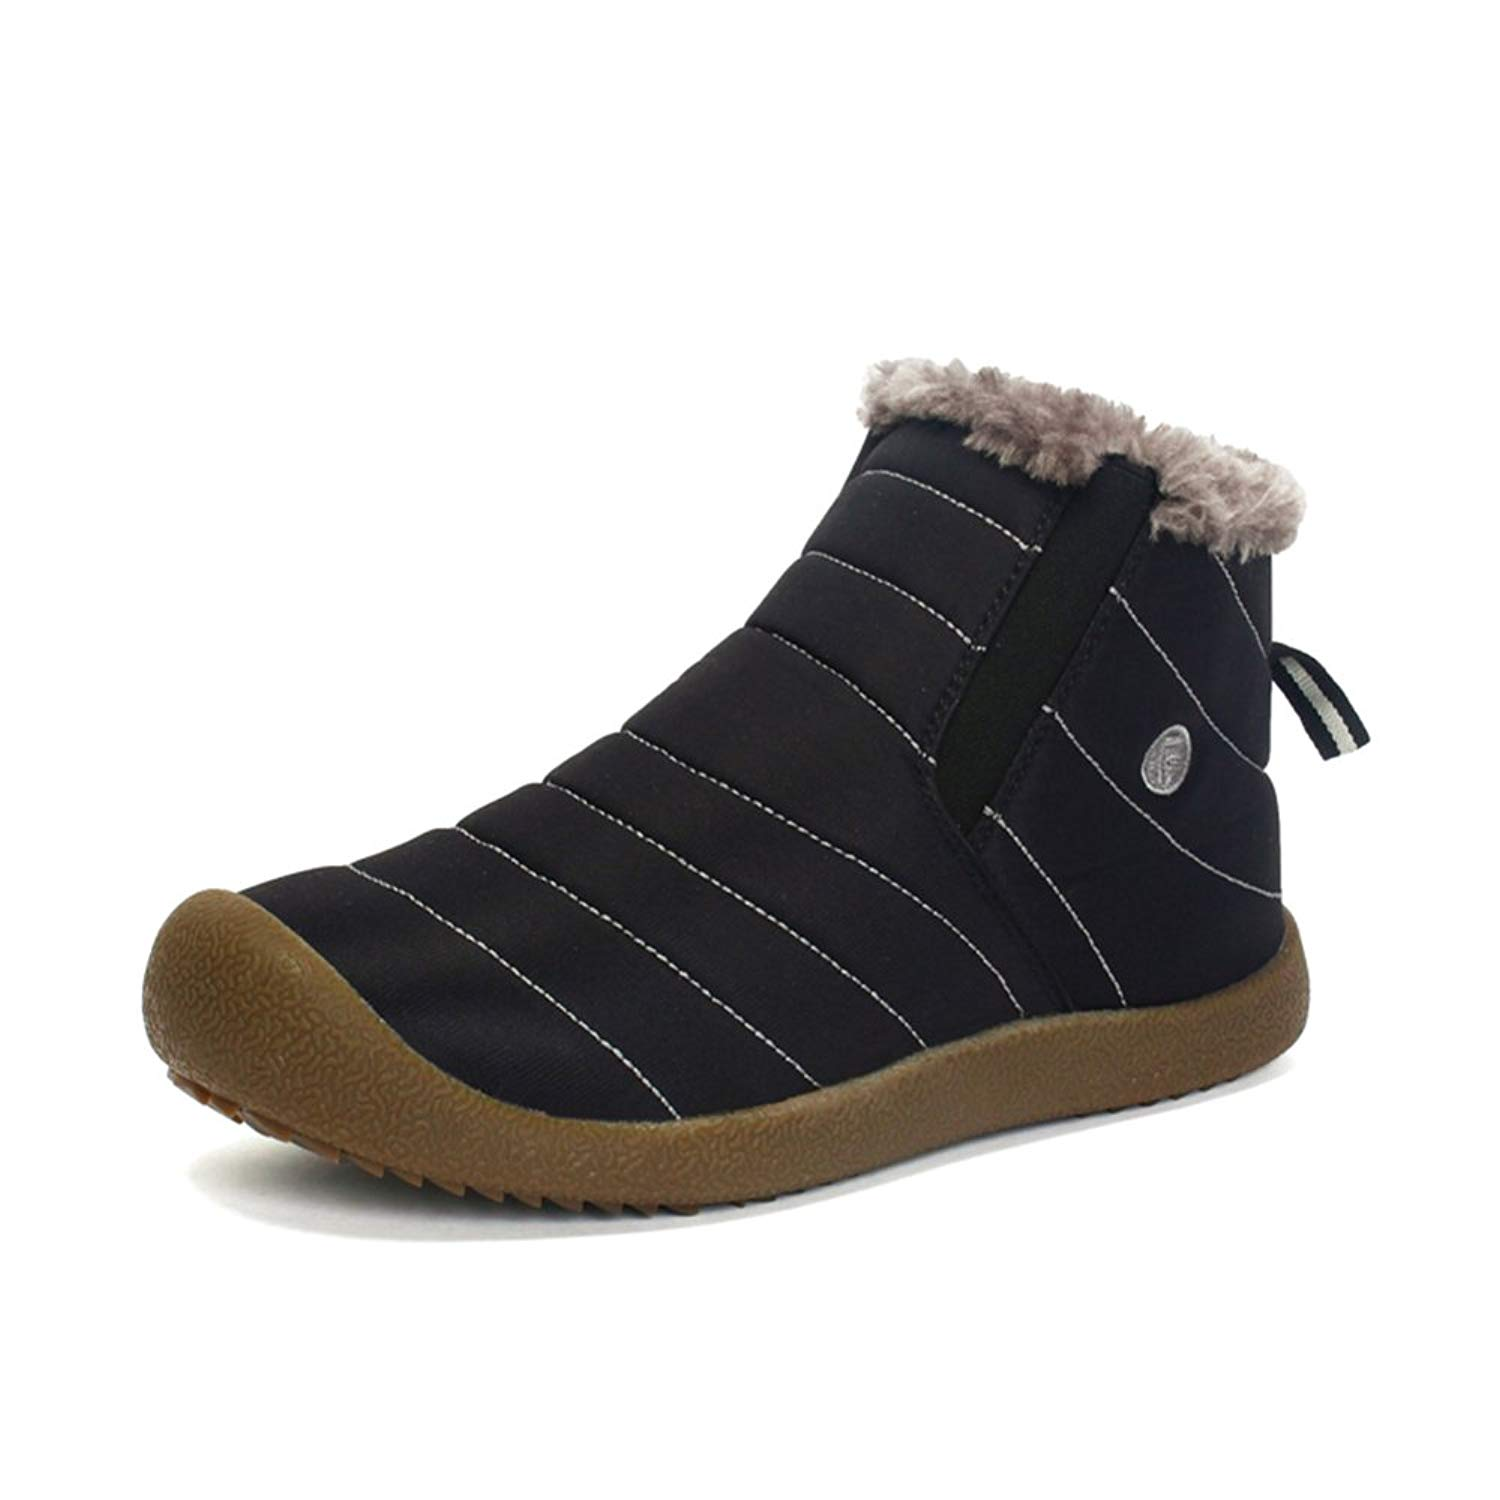 939aa7f8cc412b Sanyge Men's Fully Fur Lined Snow Boots Waterproof Warm Ankle Boot Non-Slip  Winter Shoes